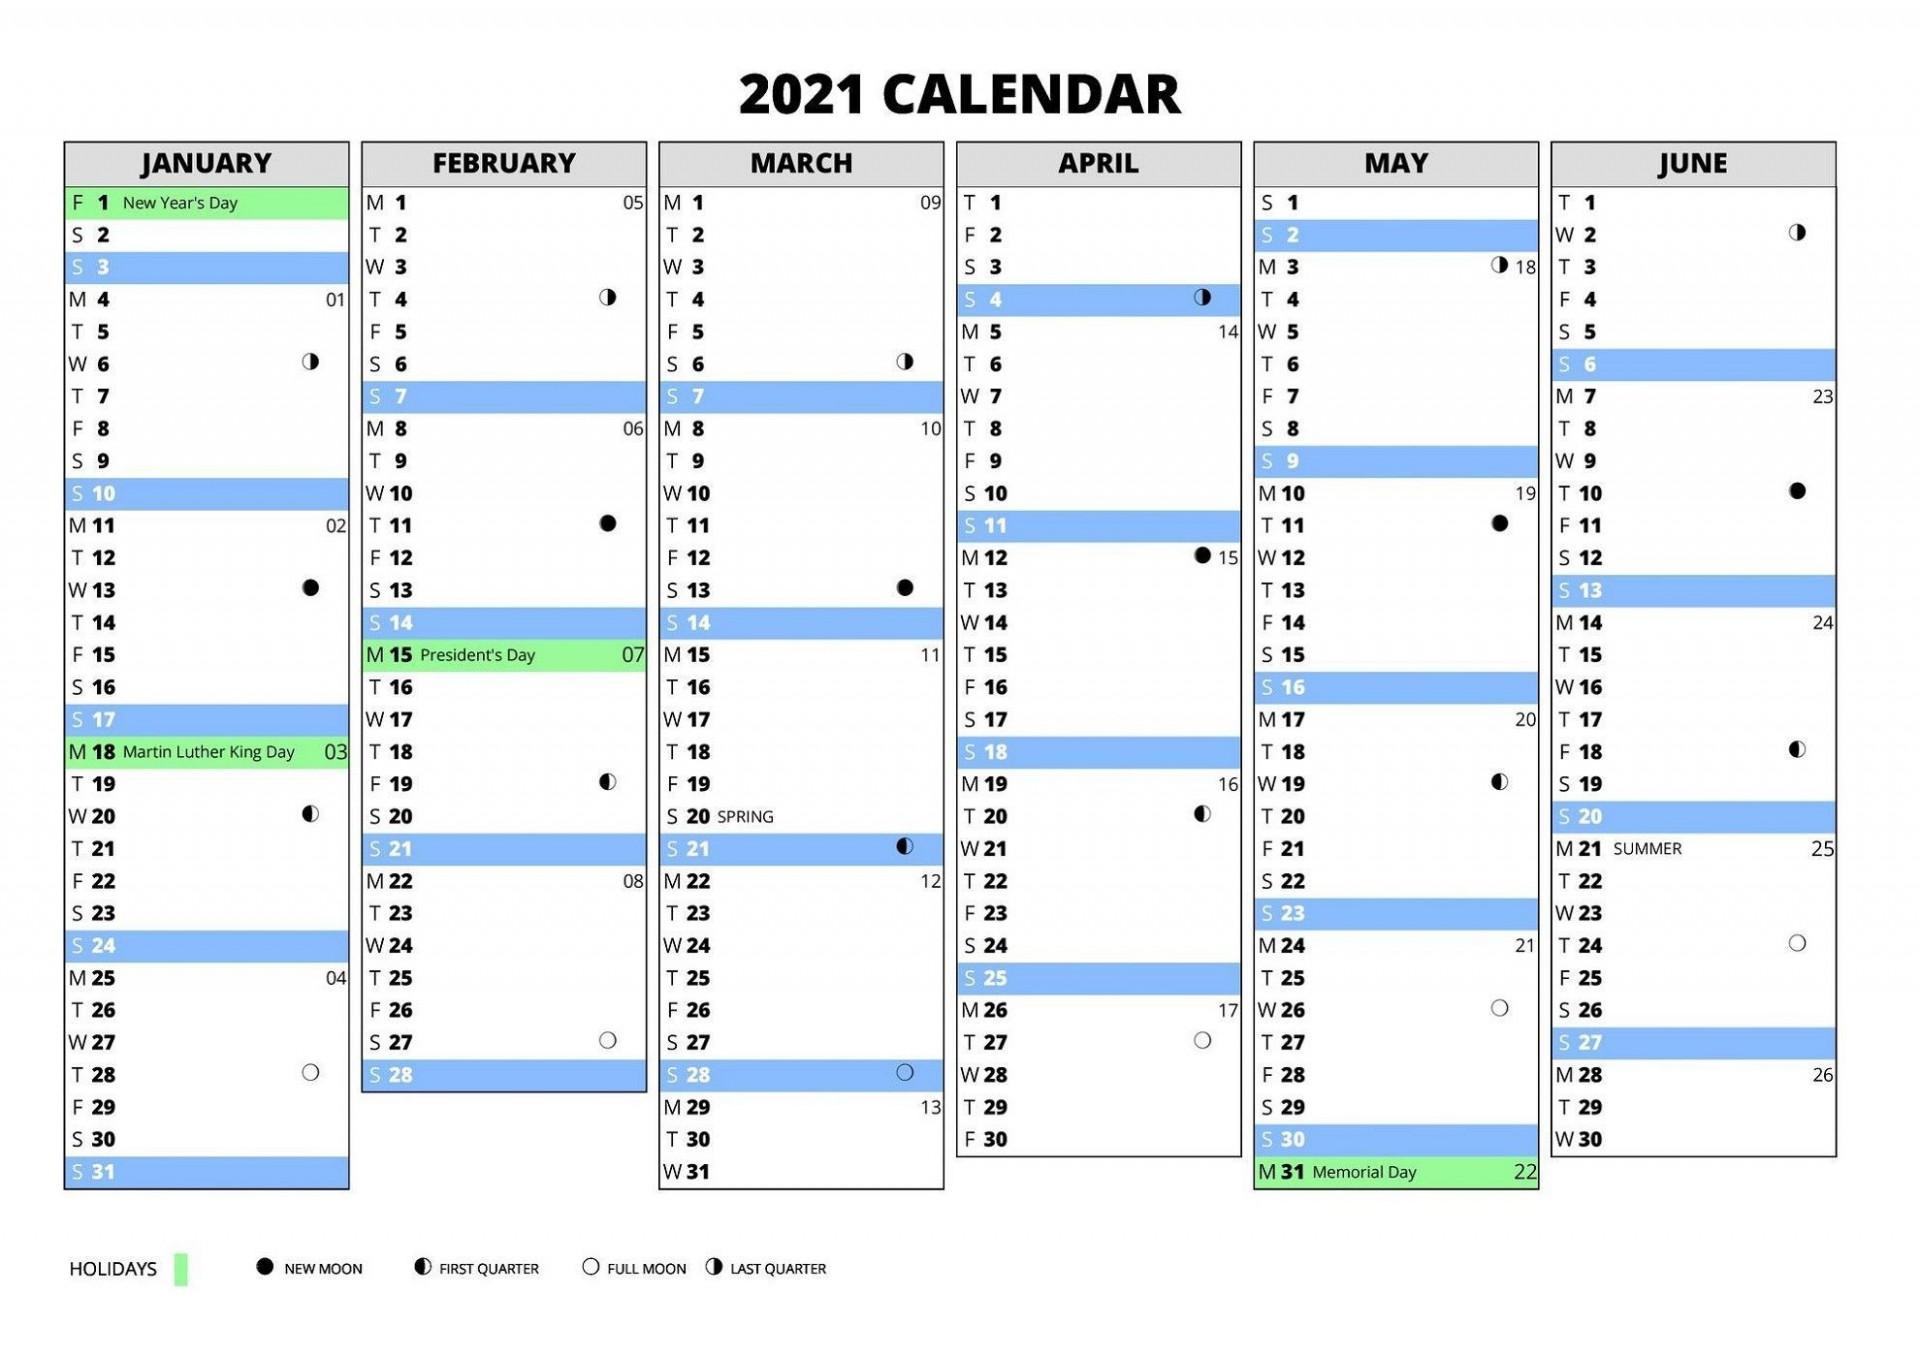 002 Amazing Excel Calendar 2021 Template Highest Clarity  Yearly Microsoft1920